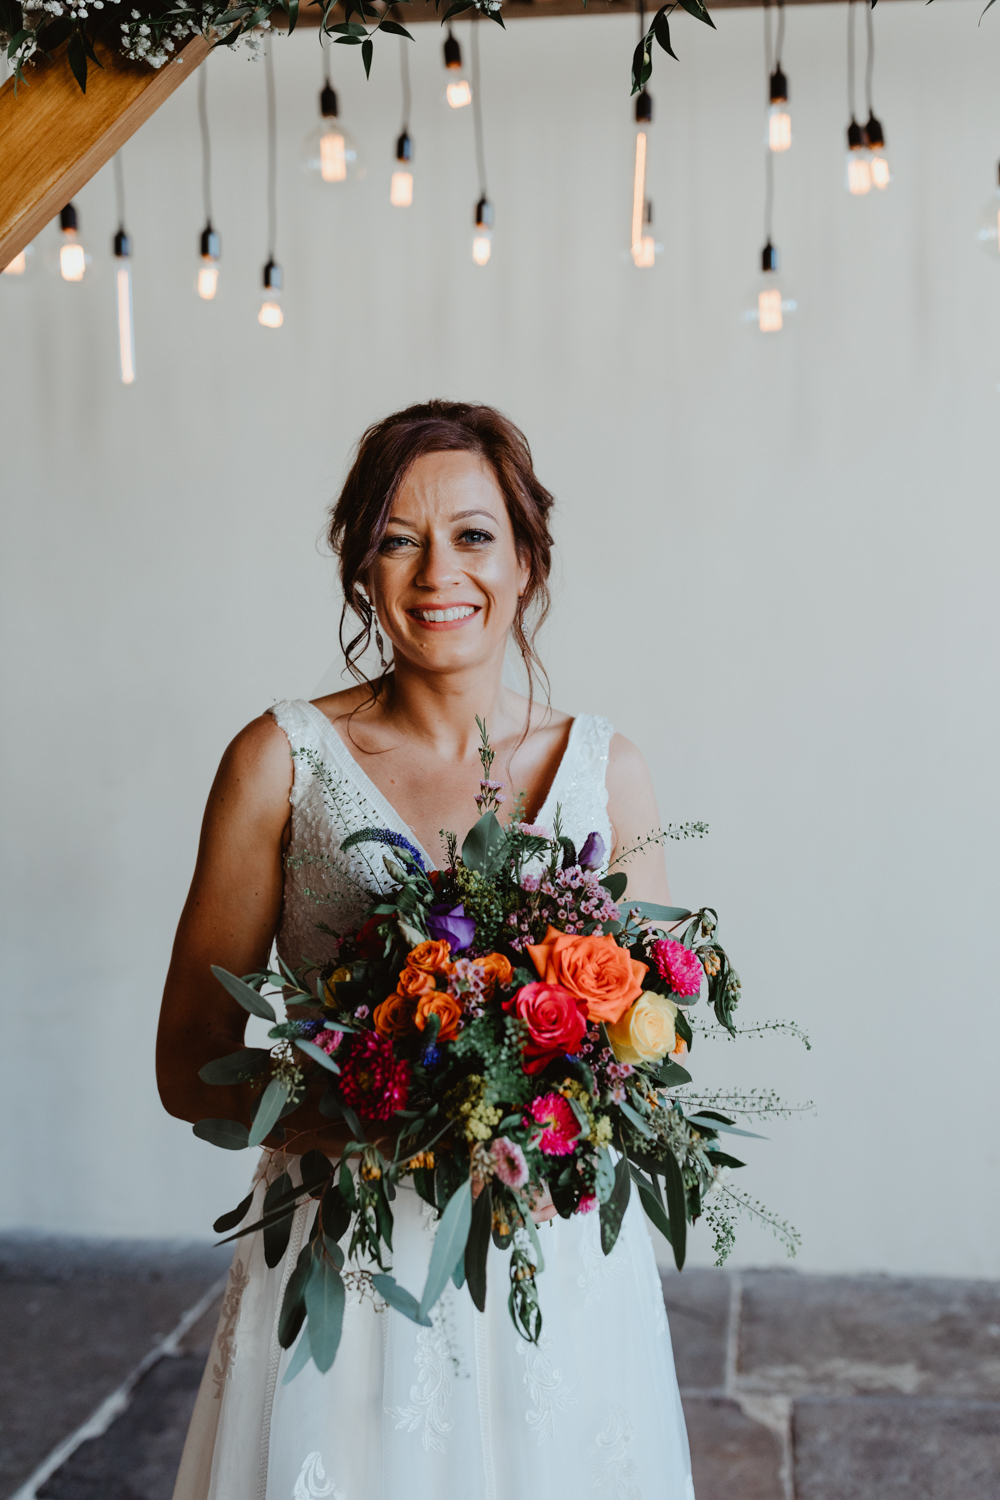 Bouquet Flowers Bride Bridal Orange Rose Greenery Foliage Purple Arches Dean Clough Wedding Stevie Jay Photography